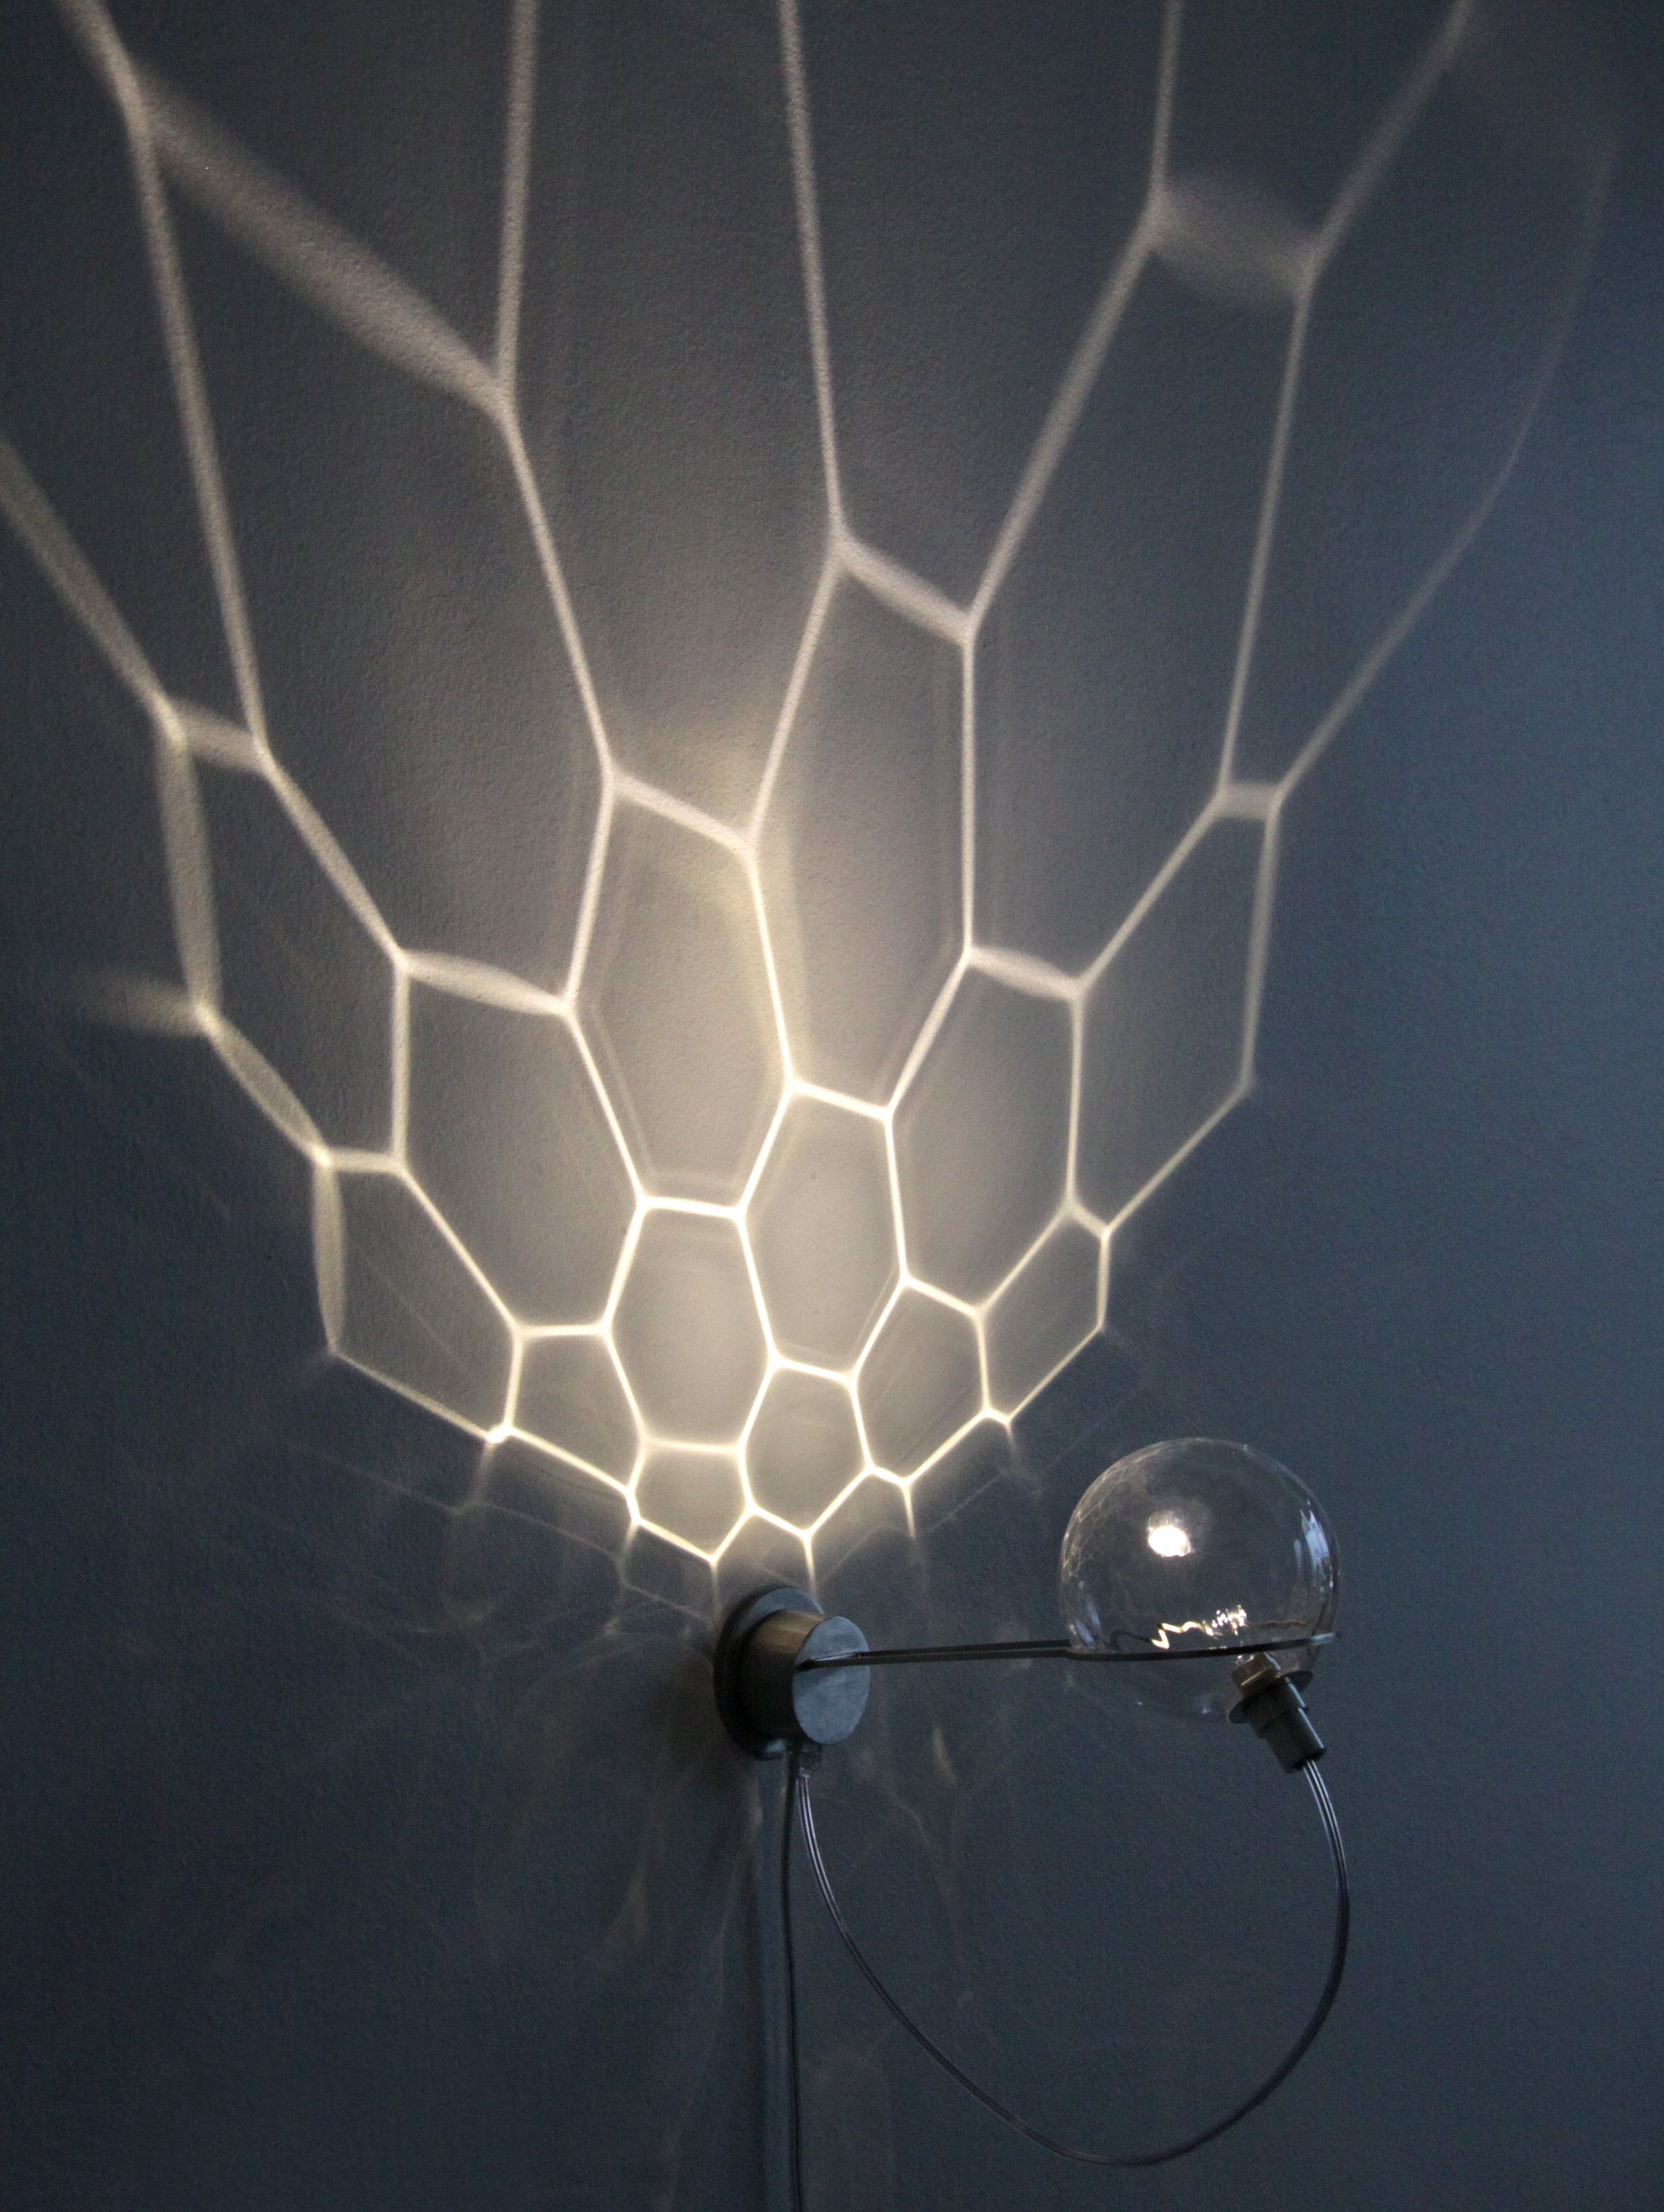 Wall Lamp New Design : Magica Wall Lamp; Kirsti Taiviola ? Design Pinterest Walls, Lights and Lighting design